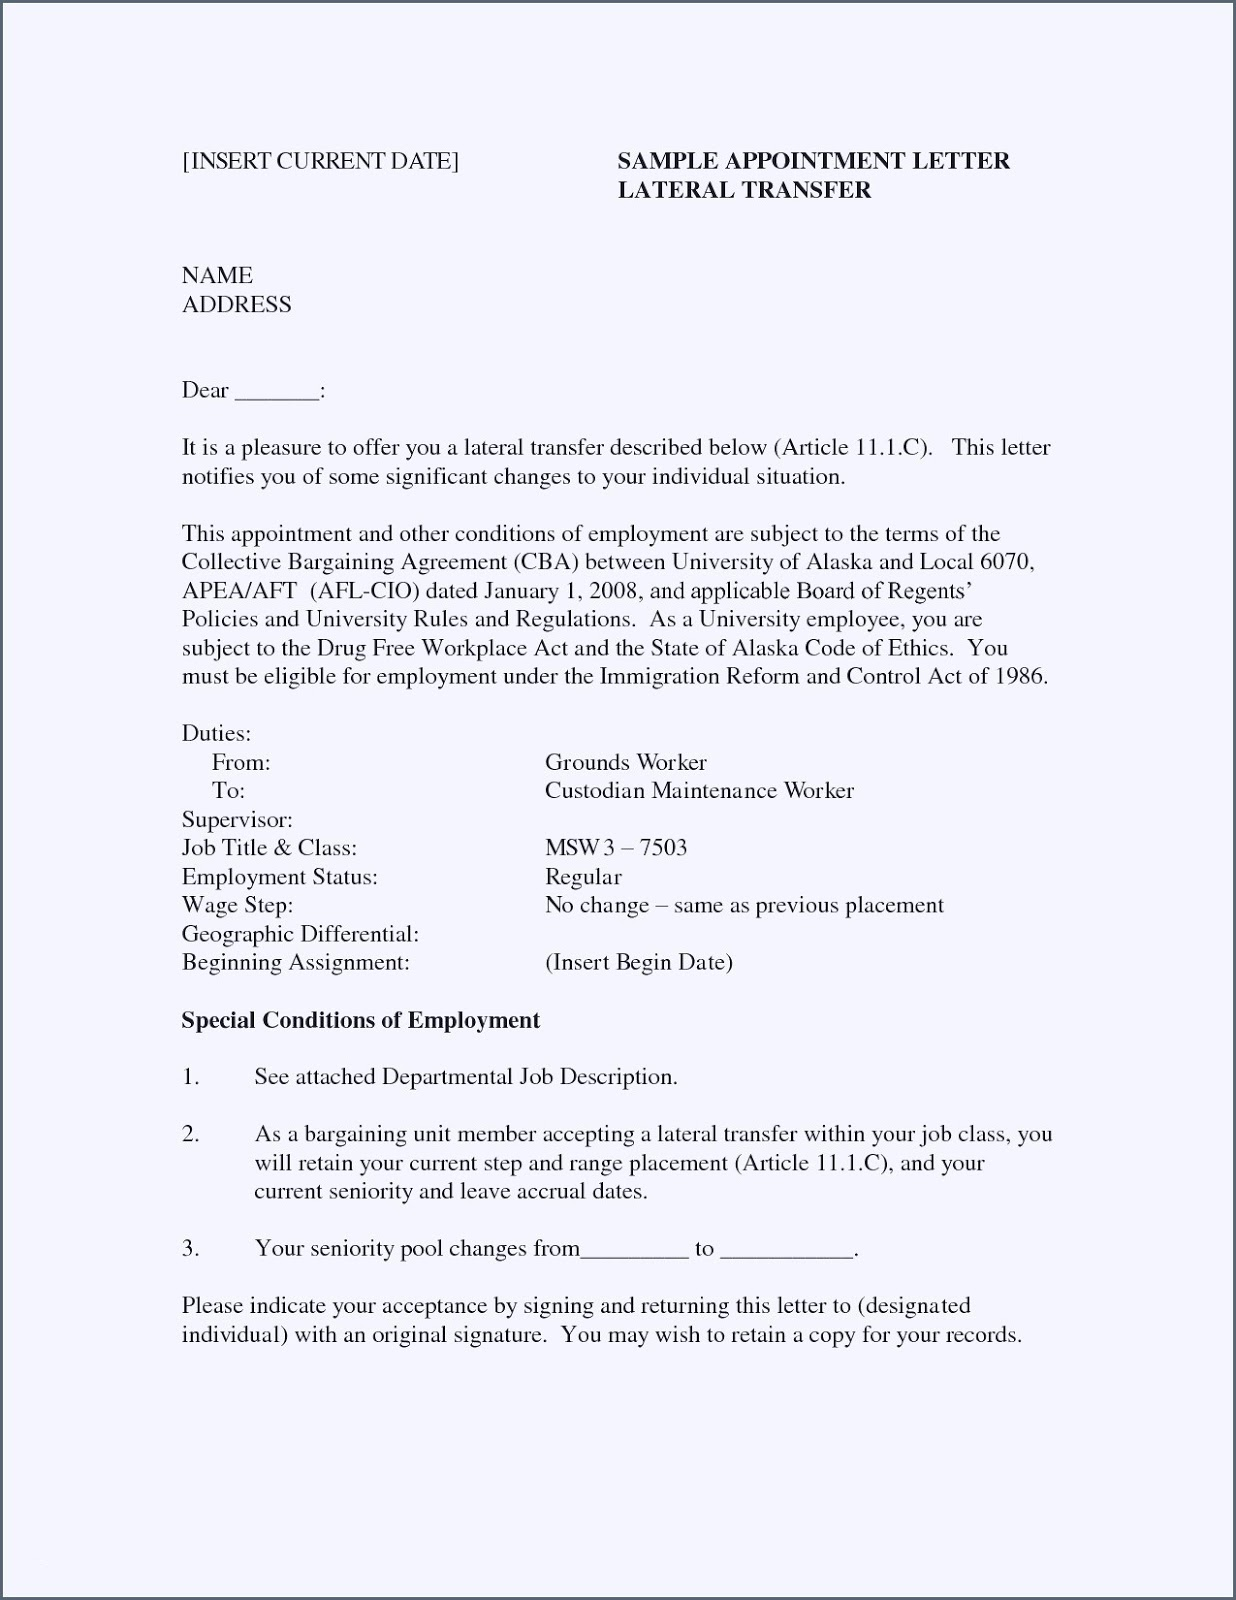 janitorial resume examples best sample for letter of recommendation one slide example Resume Janitorial Sample Resume Examples